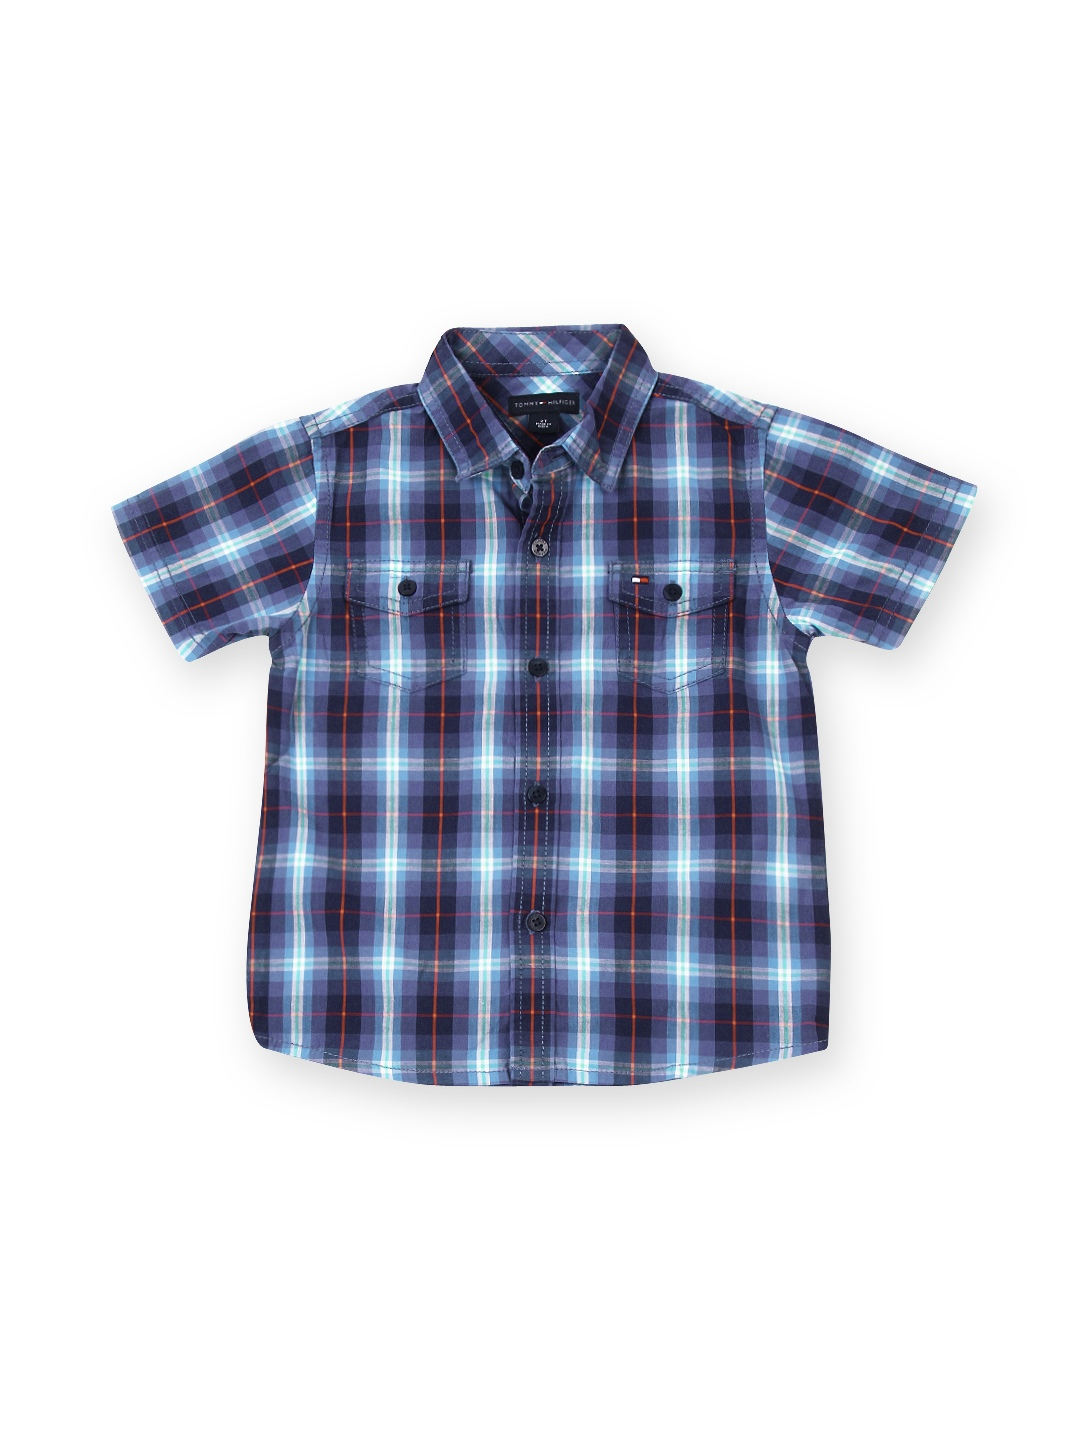 Myntra tommy hilfiger boys blue checked shirt 534834 buy for Shirts online shopping lowest price